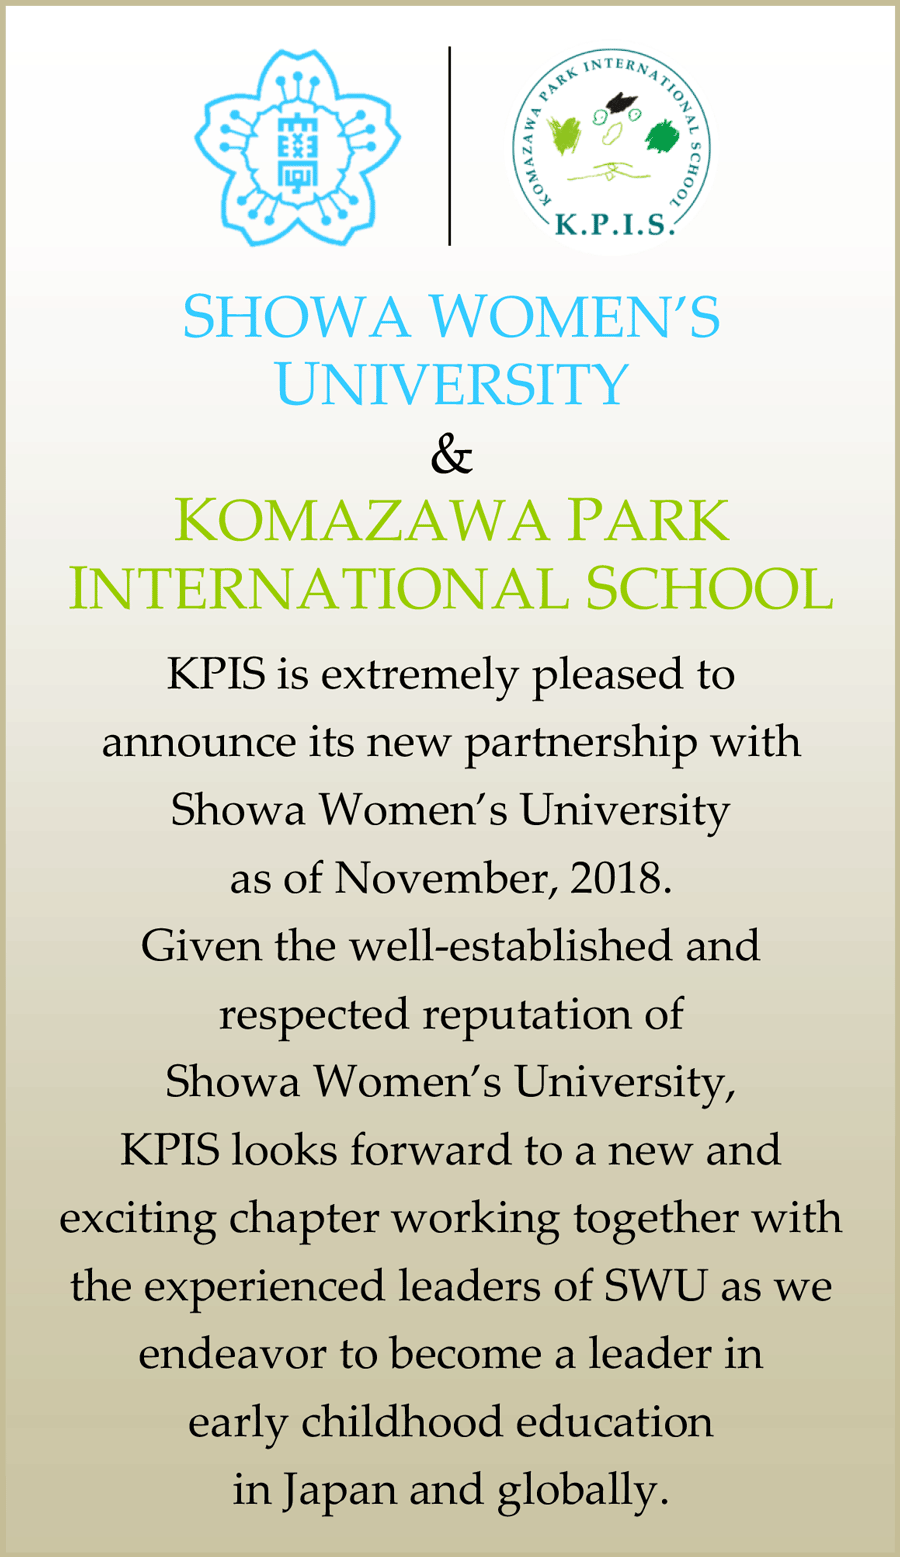 SHOWA WOMEN'S UNVERSITY and KPIS | KOMAZAWA PARK INTERNATIONAL SCHOOL